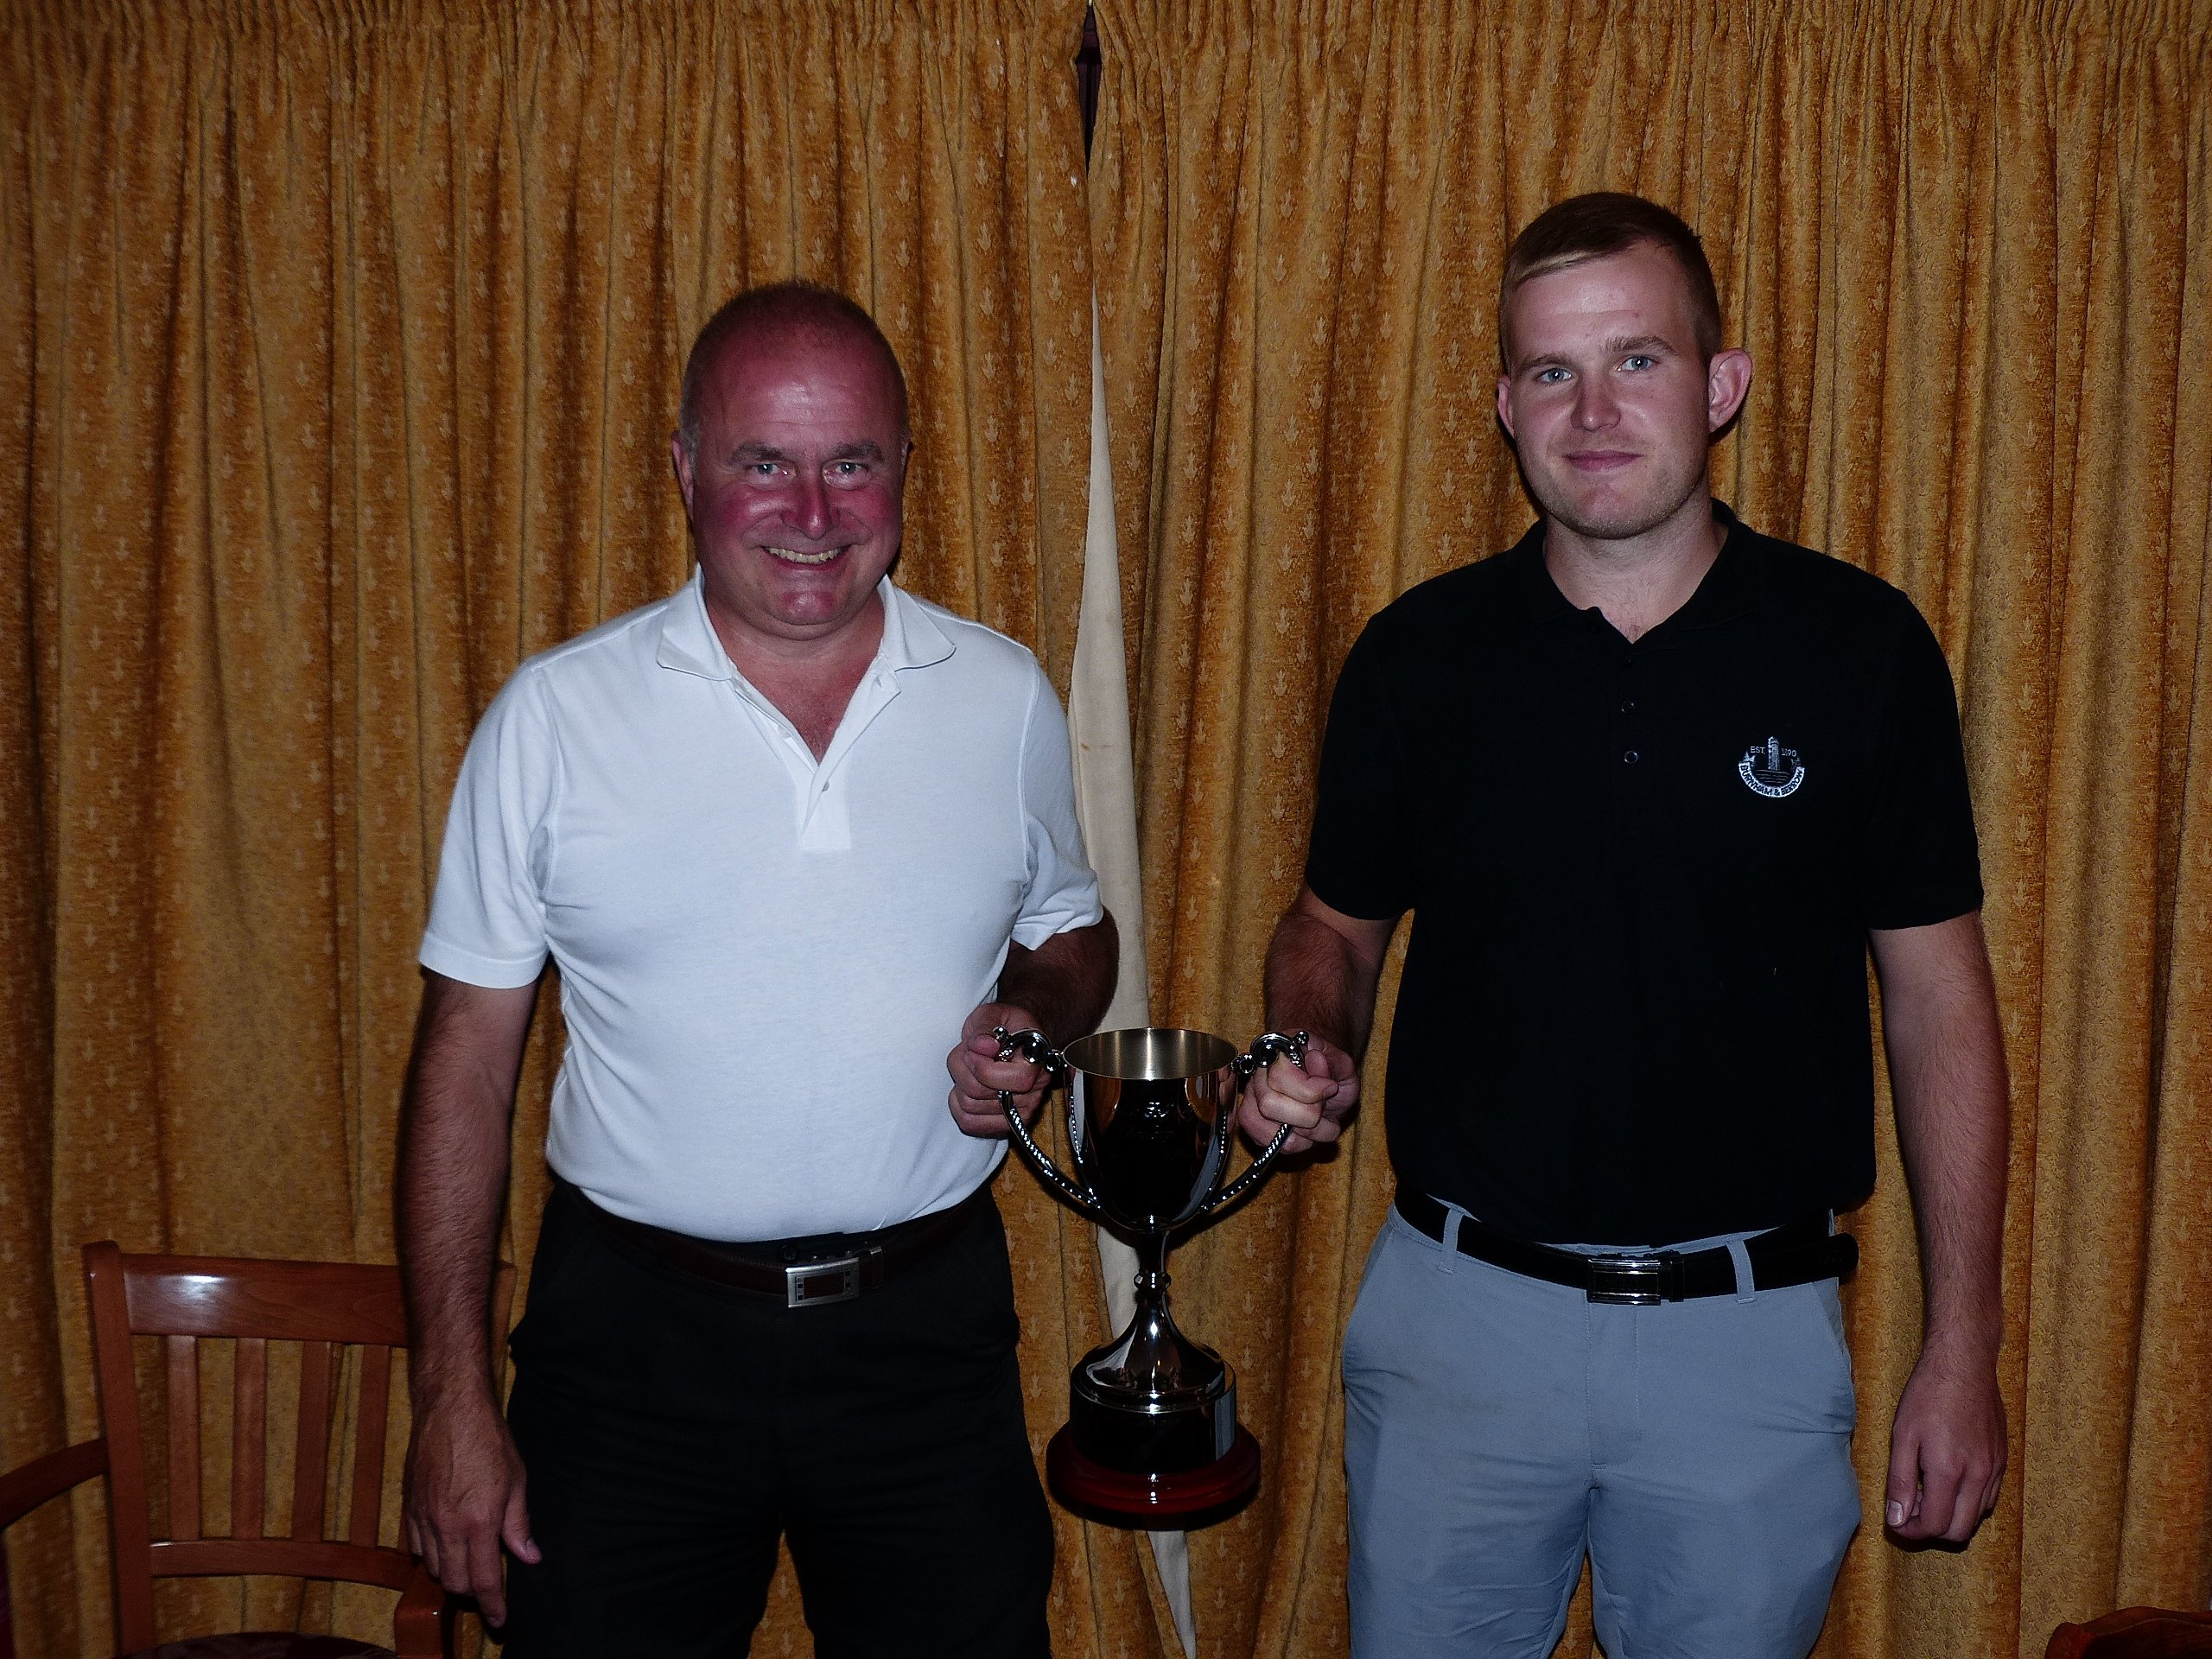 Players in pairs for the scottish paris golf challenge